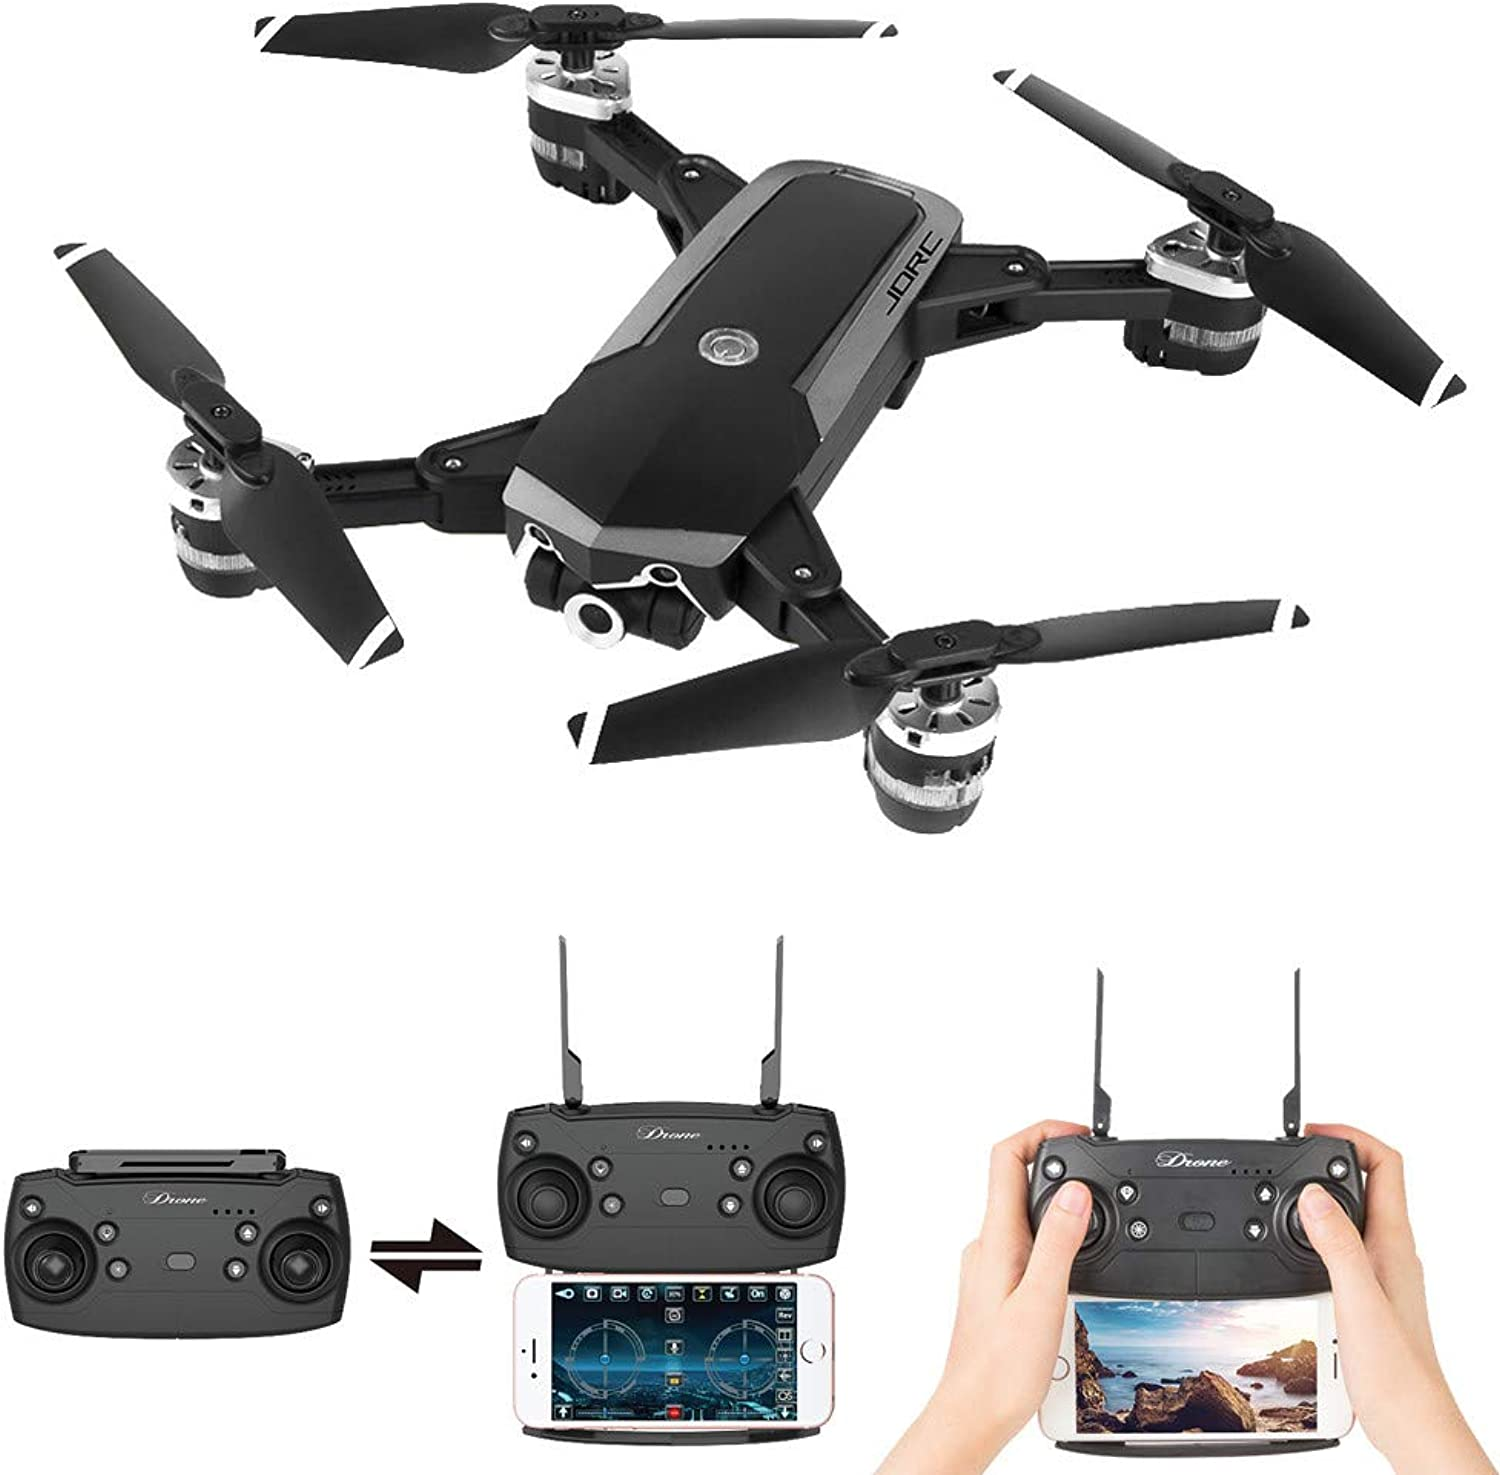 IGEMY JDRC WiFi FPV RC Quadcopter Foldable Remote Control Drone 720P 4 Channel 0.3 2MP with Wide Angle HD Camera (A)